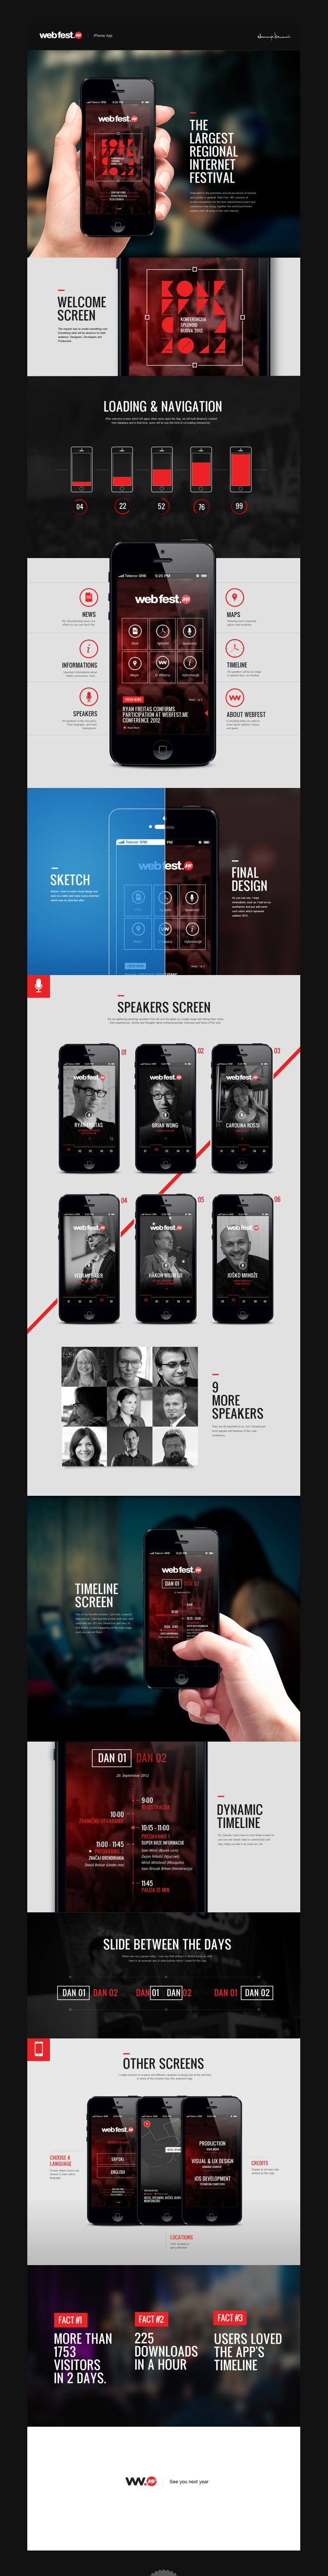 WebFest - iPhone App by Nemanja Ivanovic, via Behance #webdesign